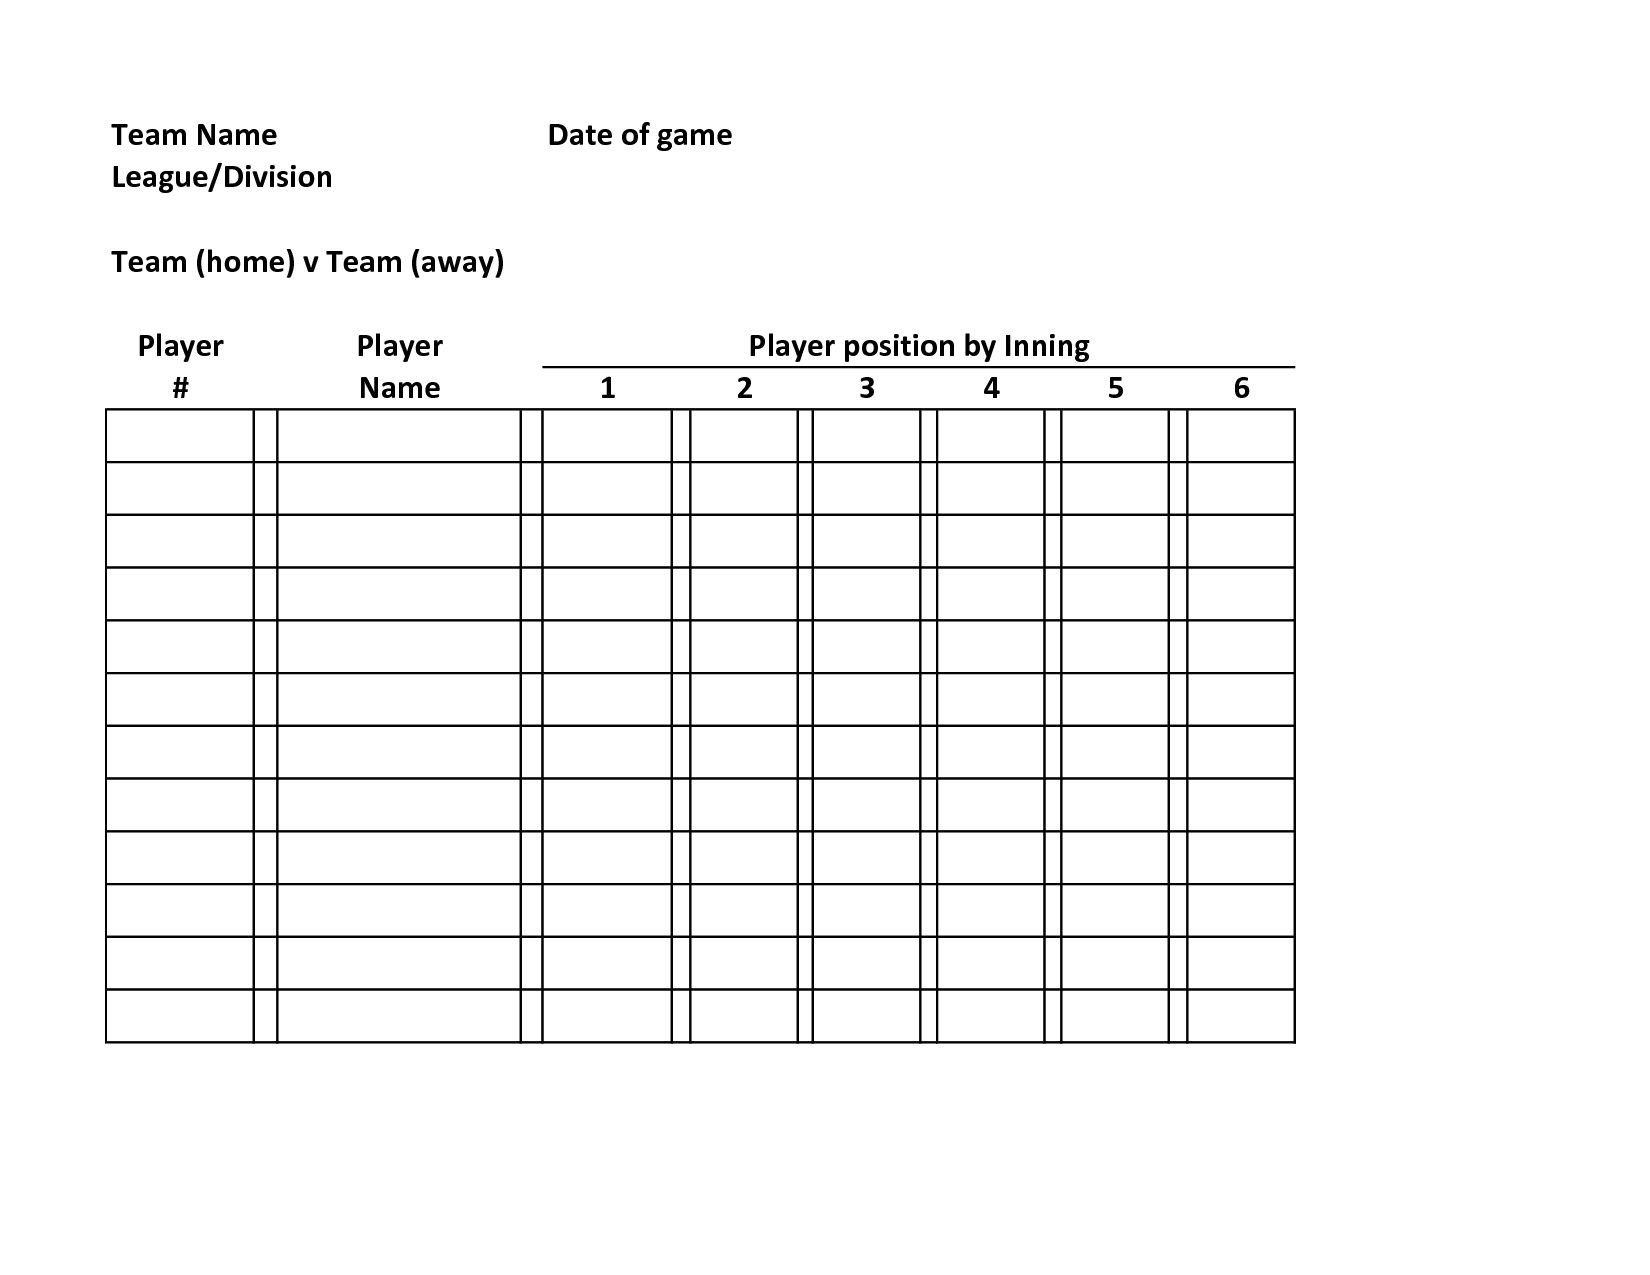 Baseball Lineup Defensive Baseball Roster Template Team Name Date